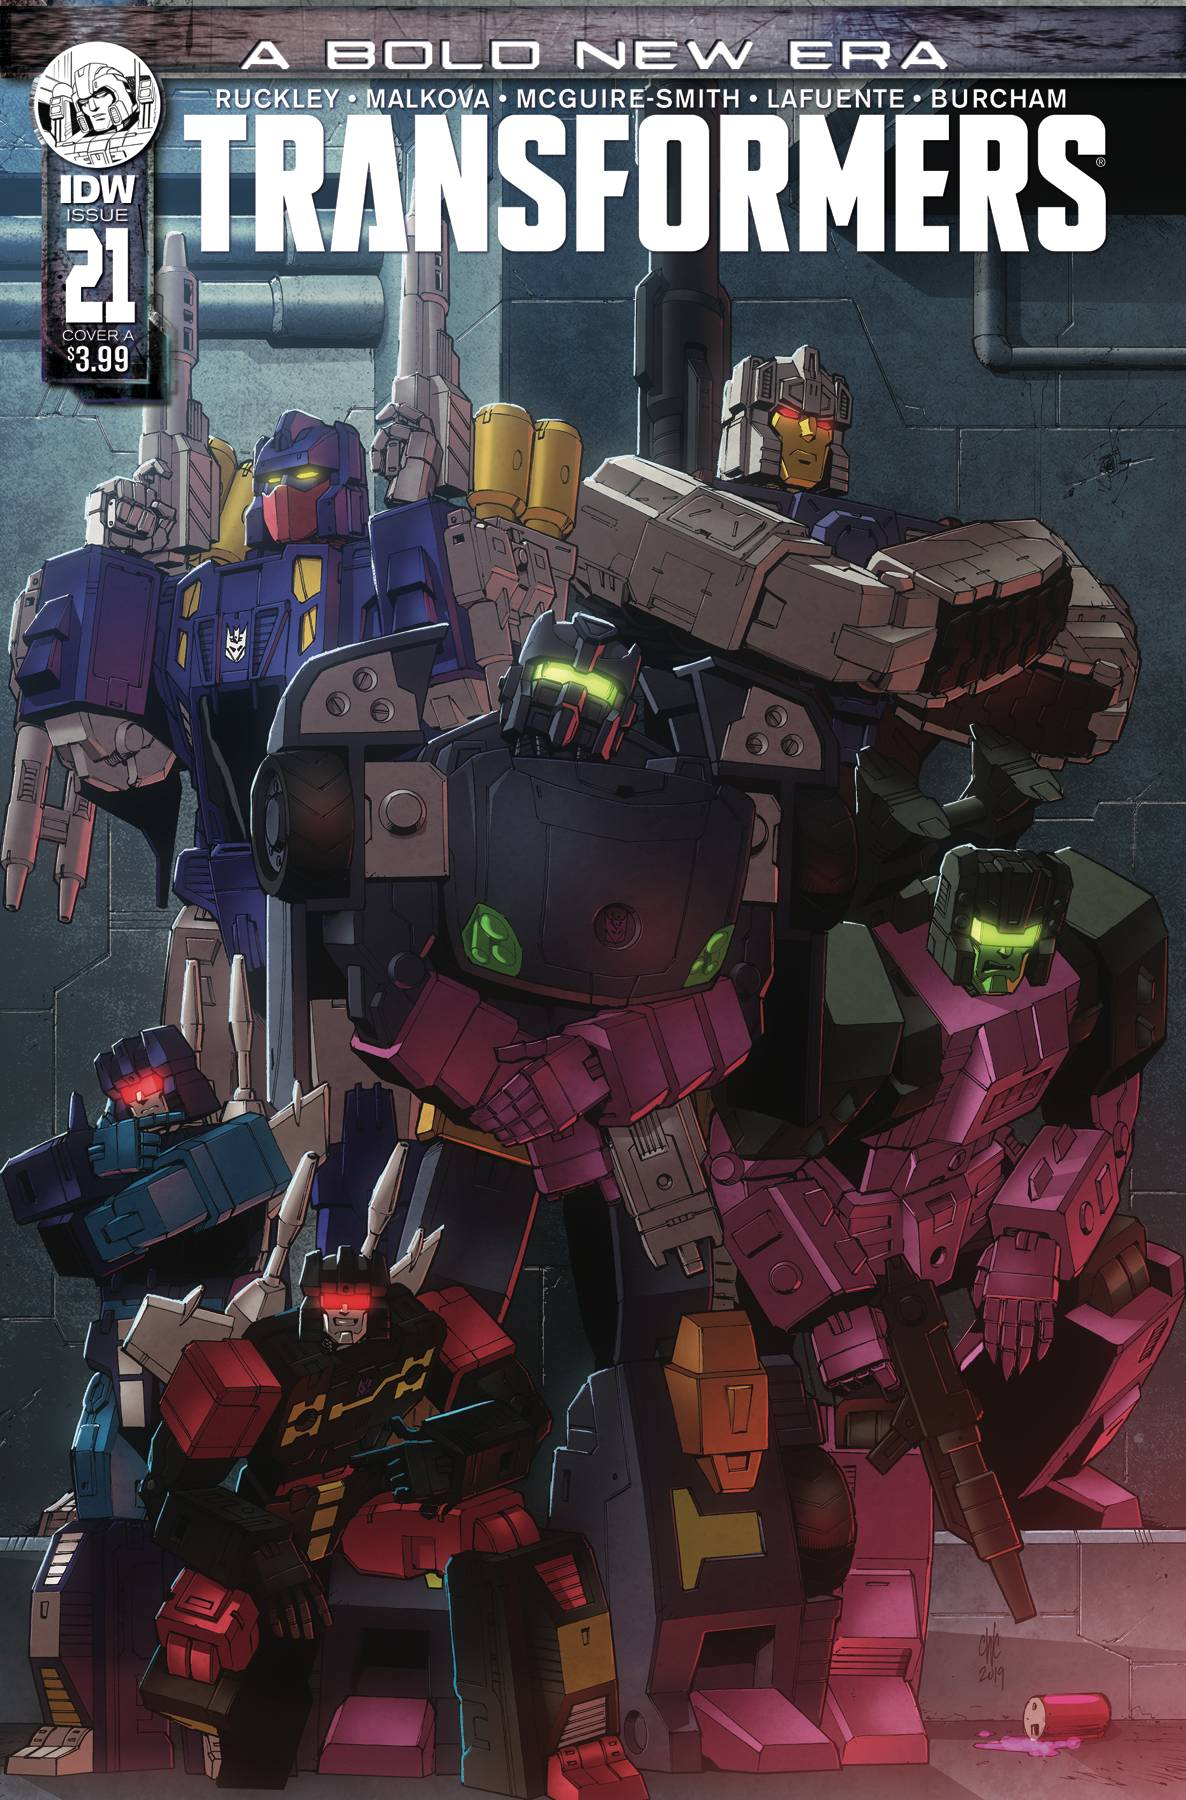 Transformers #21 (2020)